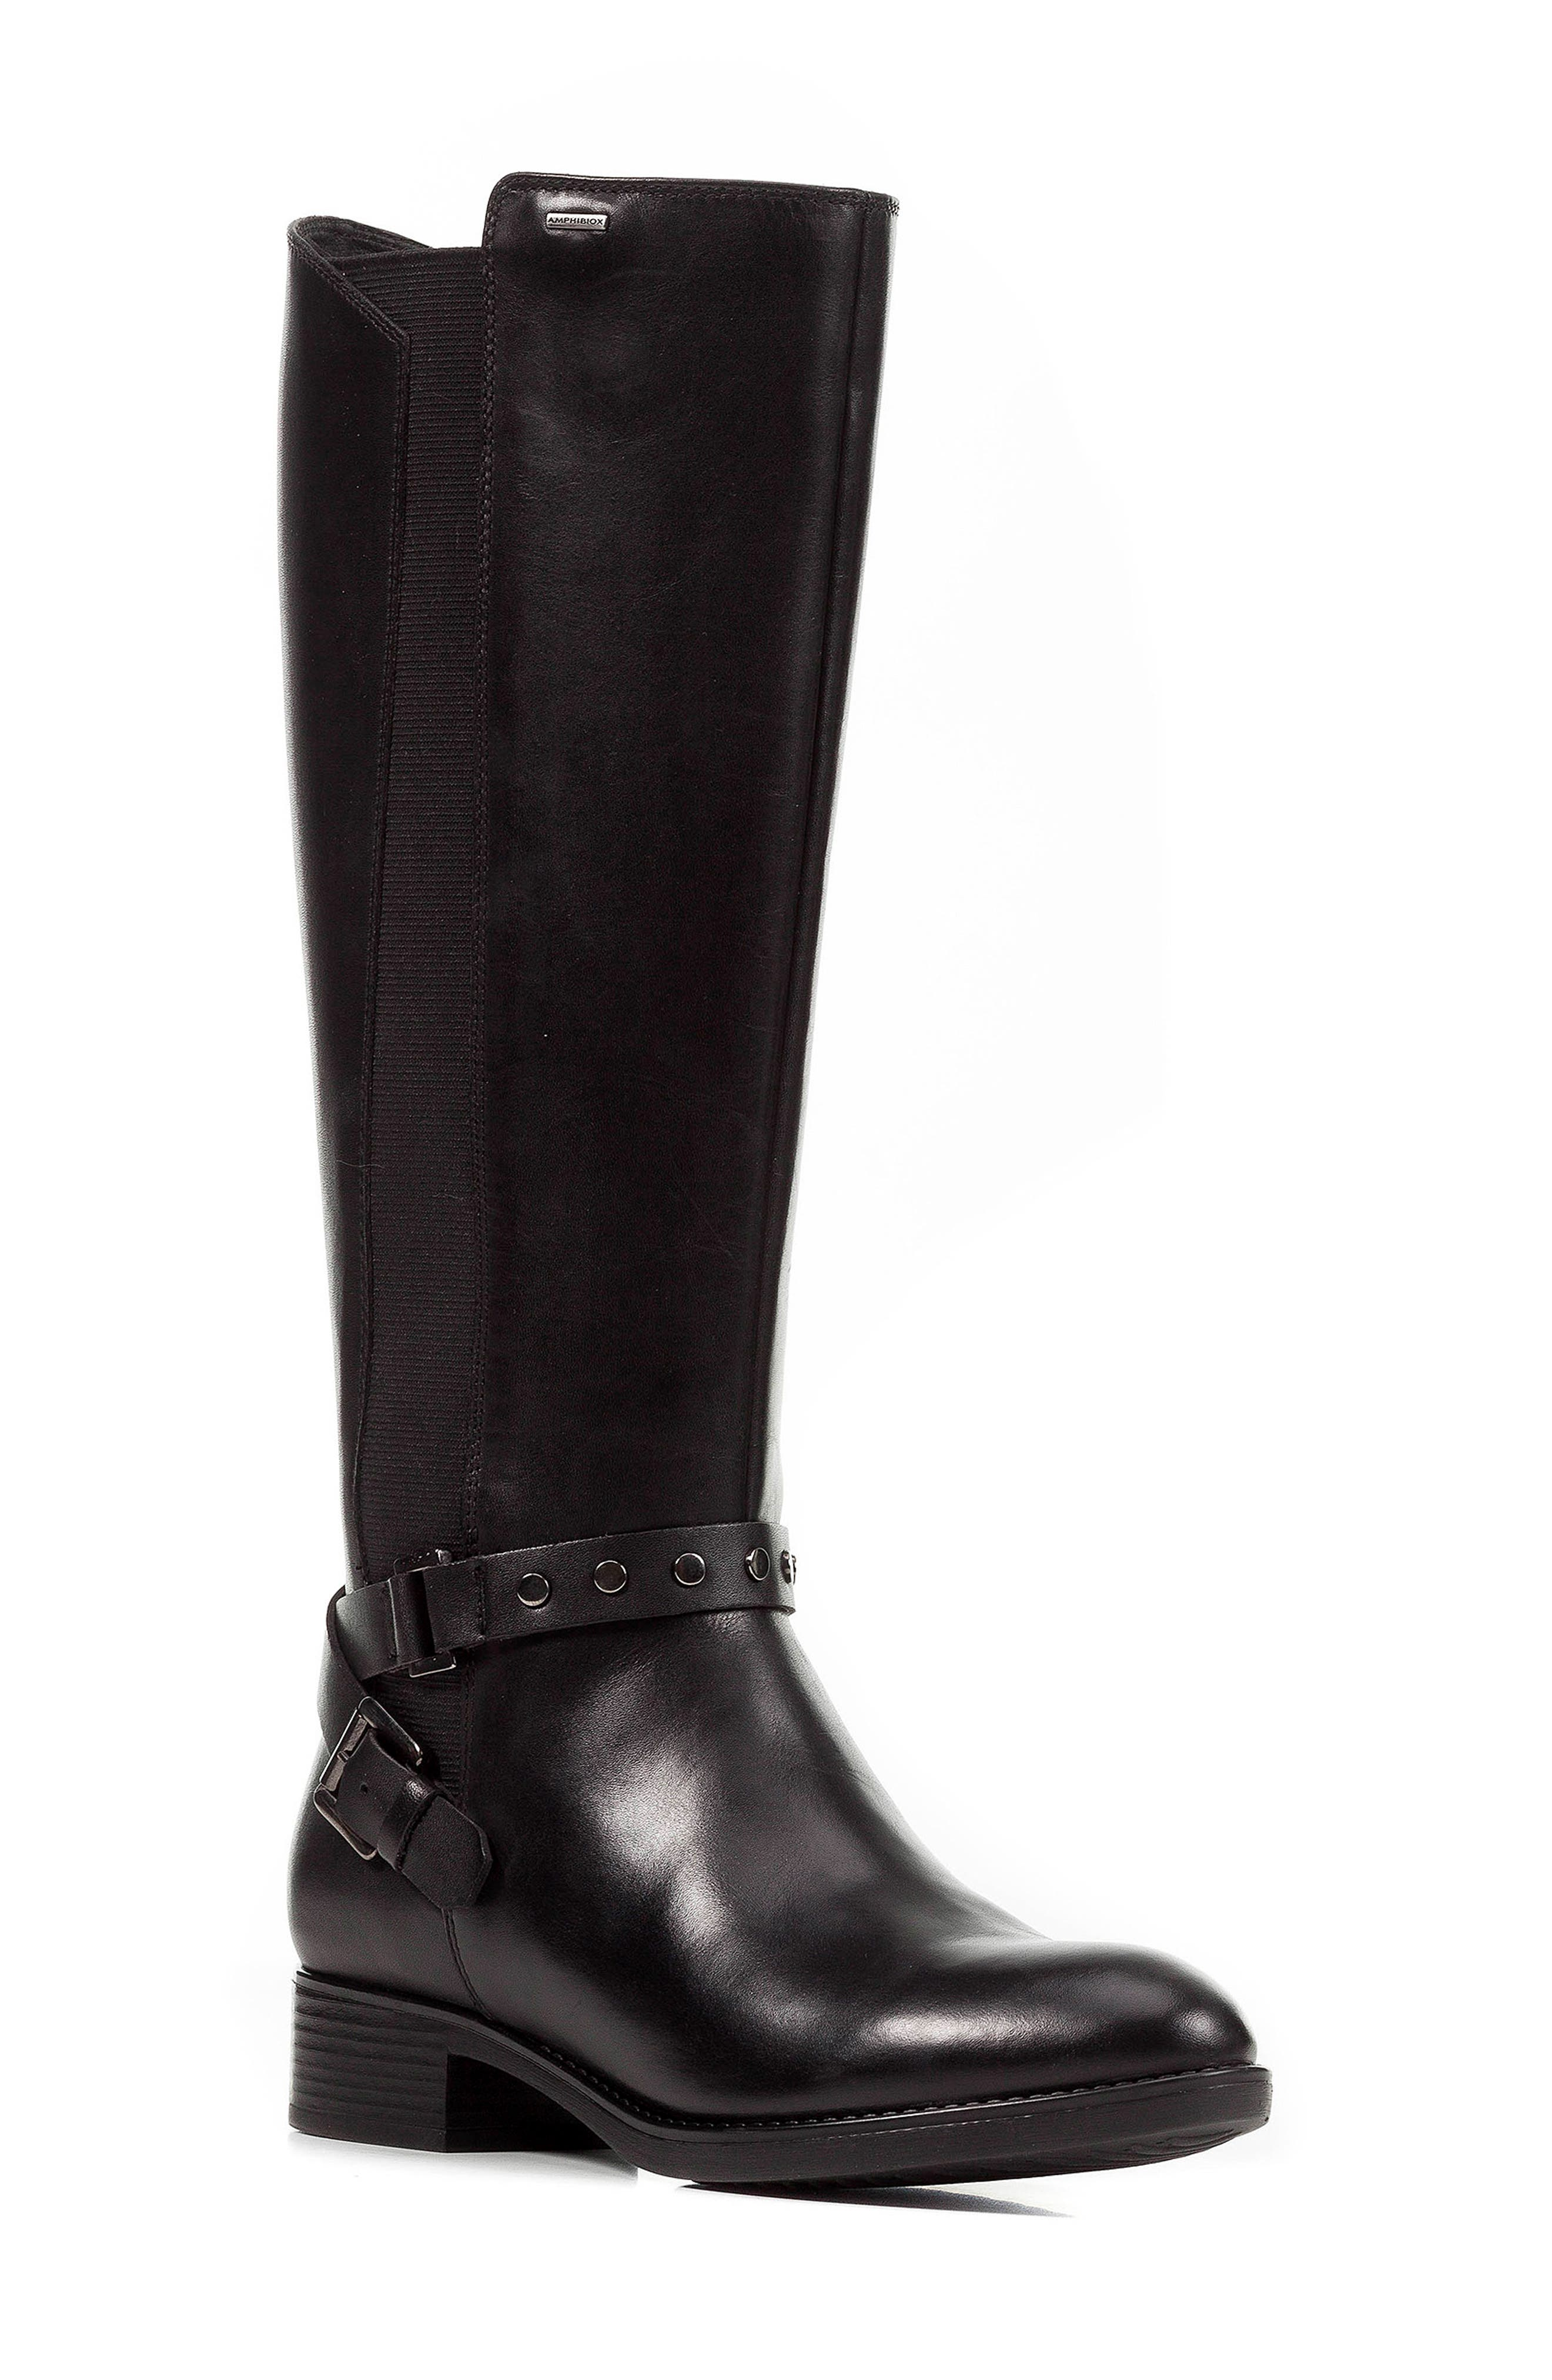 Felicity ABX Waterproof Knee High Riding Boot,                             Main thumbnail 1, color,                             BLACK LEATHER